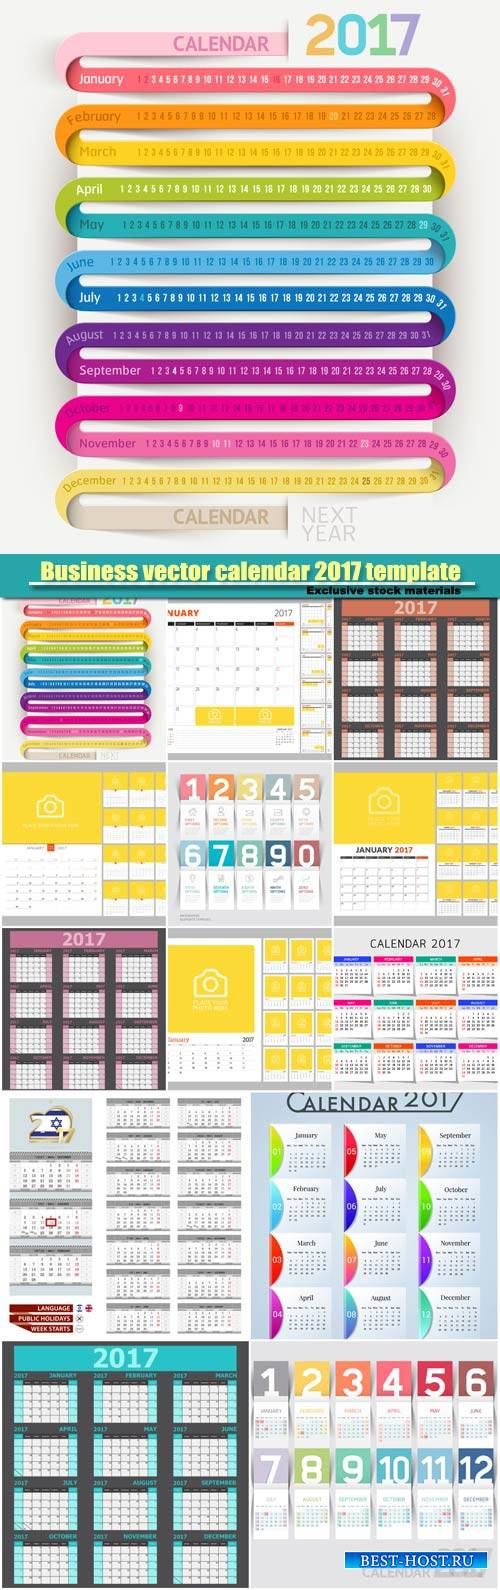 Business vector calendar 2017 template design